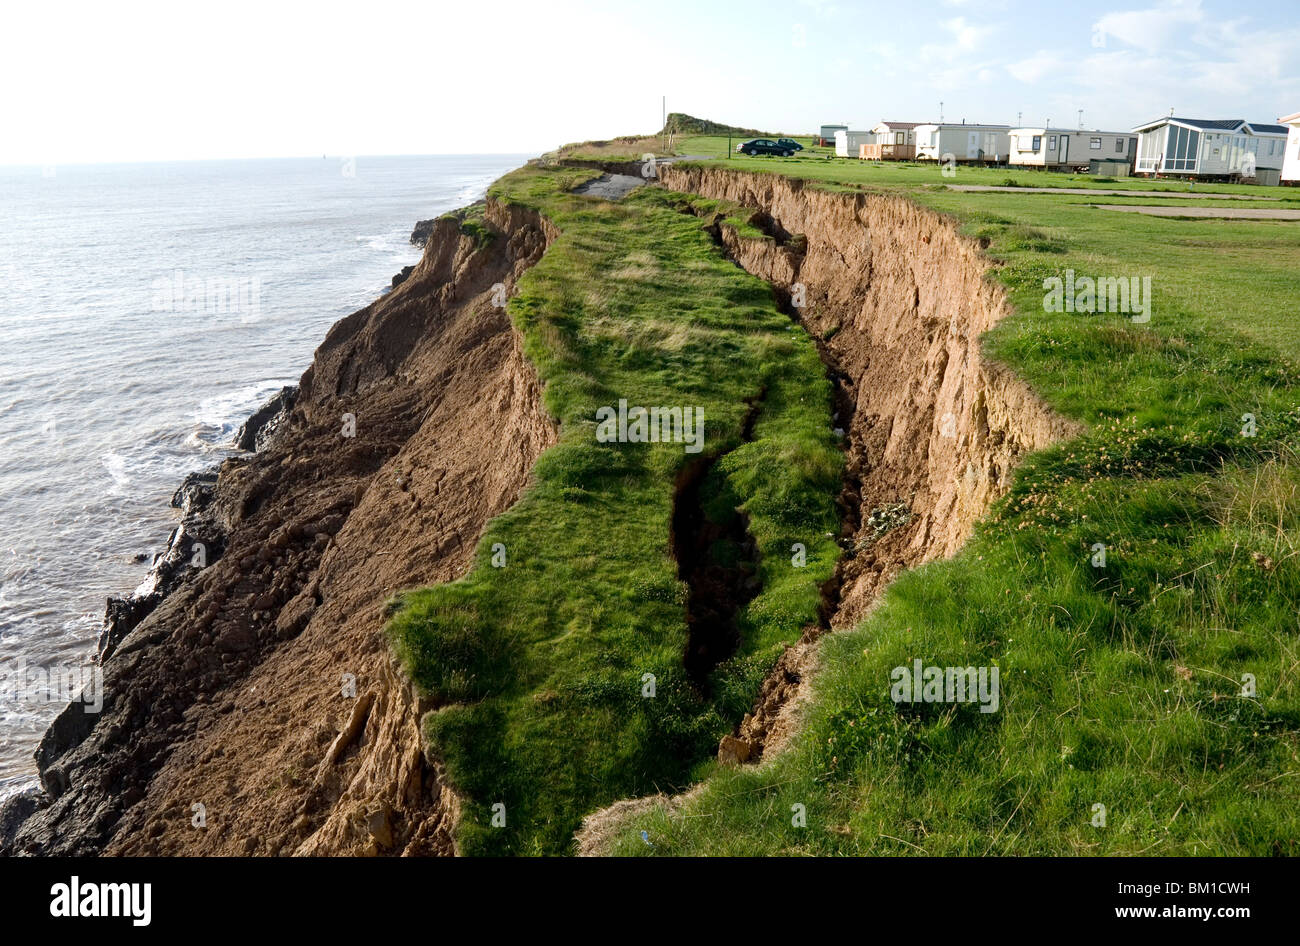 Coastal erosion and landforms